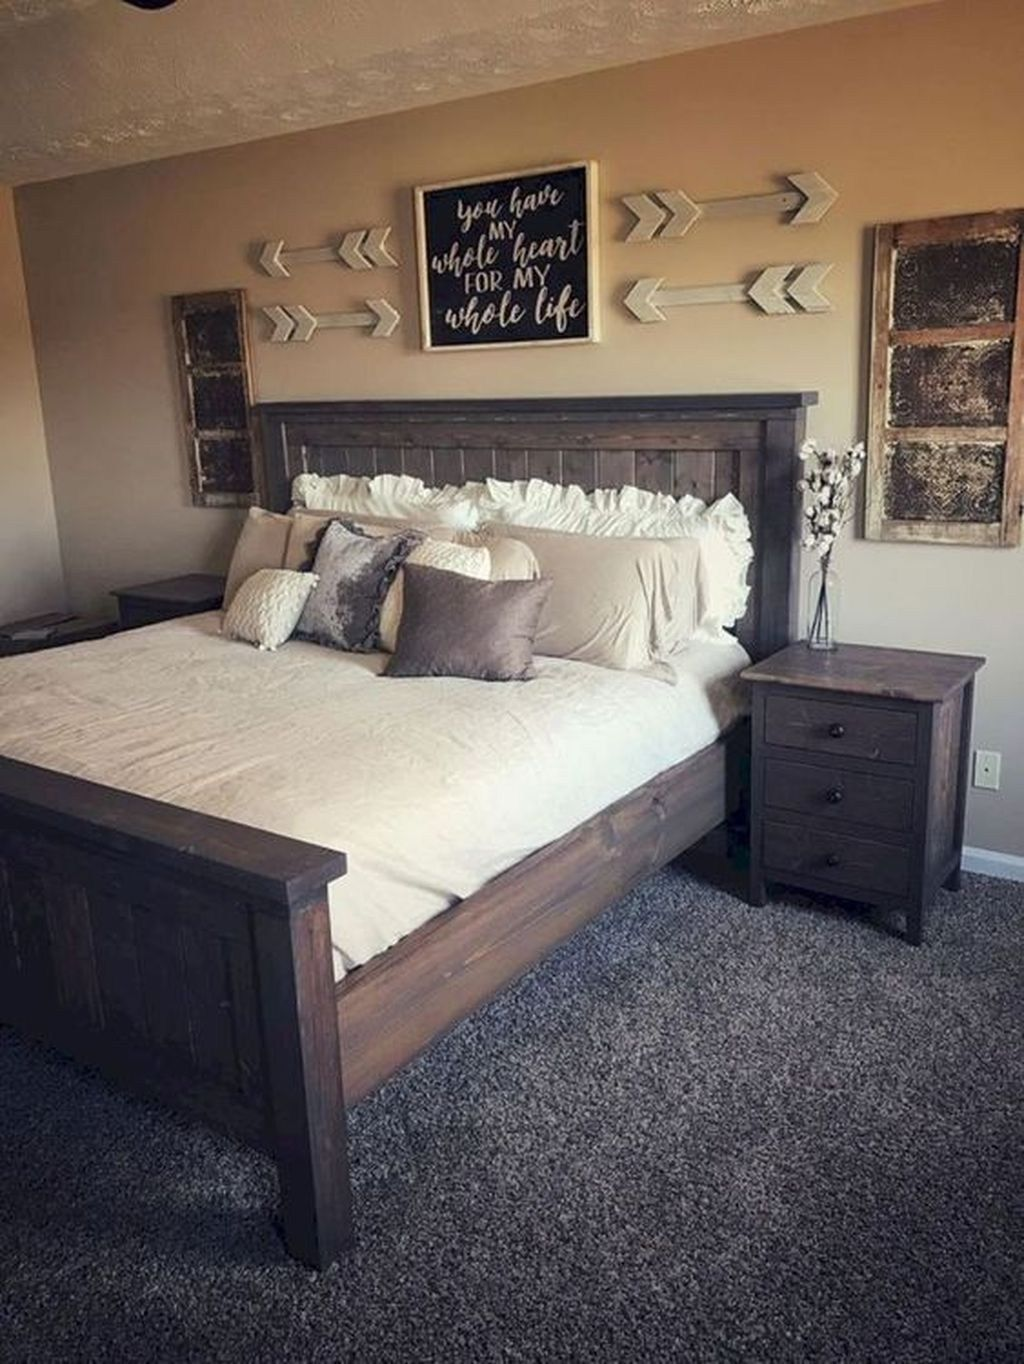 44 Beautiful Farmhouse Wall Decoration Ideas To Manage Your Home Trendehouse Rustic Bedroom Furniture Remodel Bedroom Rustic Master Bedroom